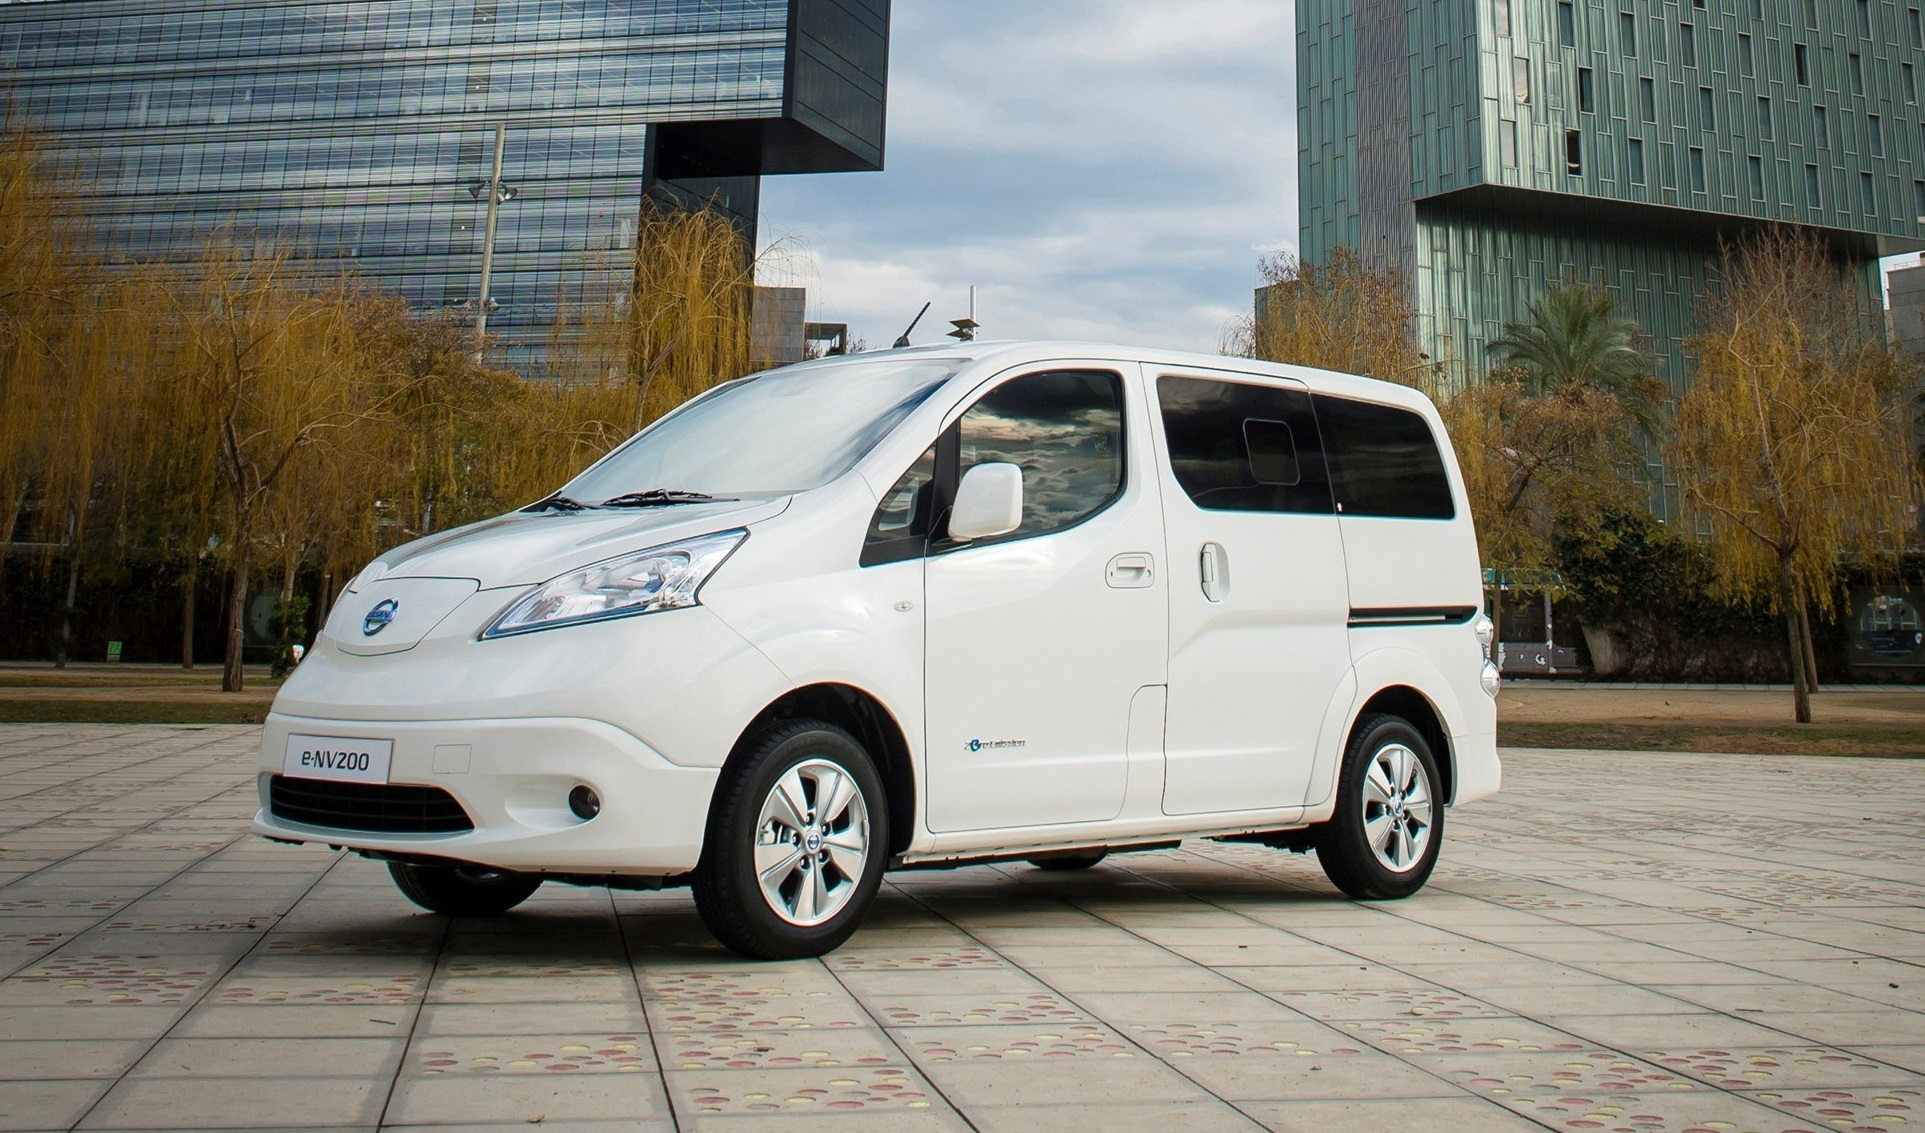 Nissan E Nv200 Electric Van Gets Longer Range Battery Still No U S Plans